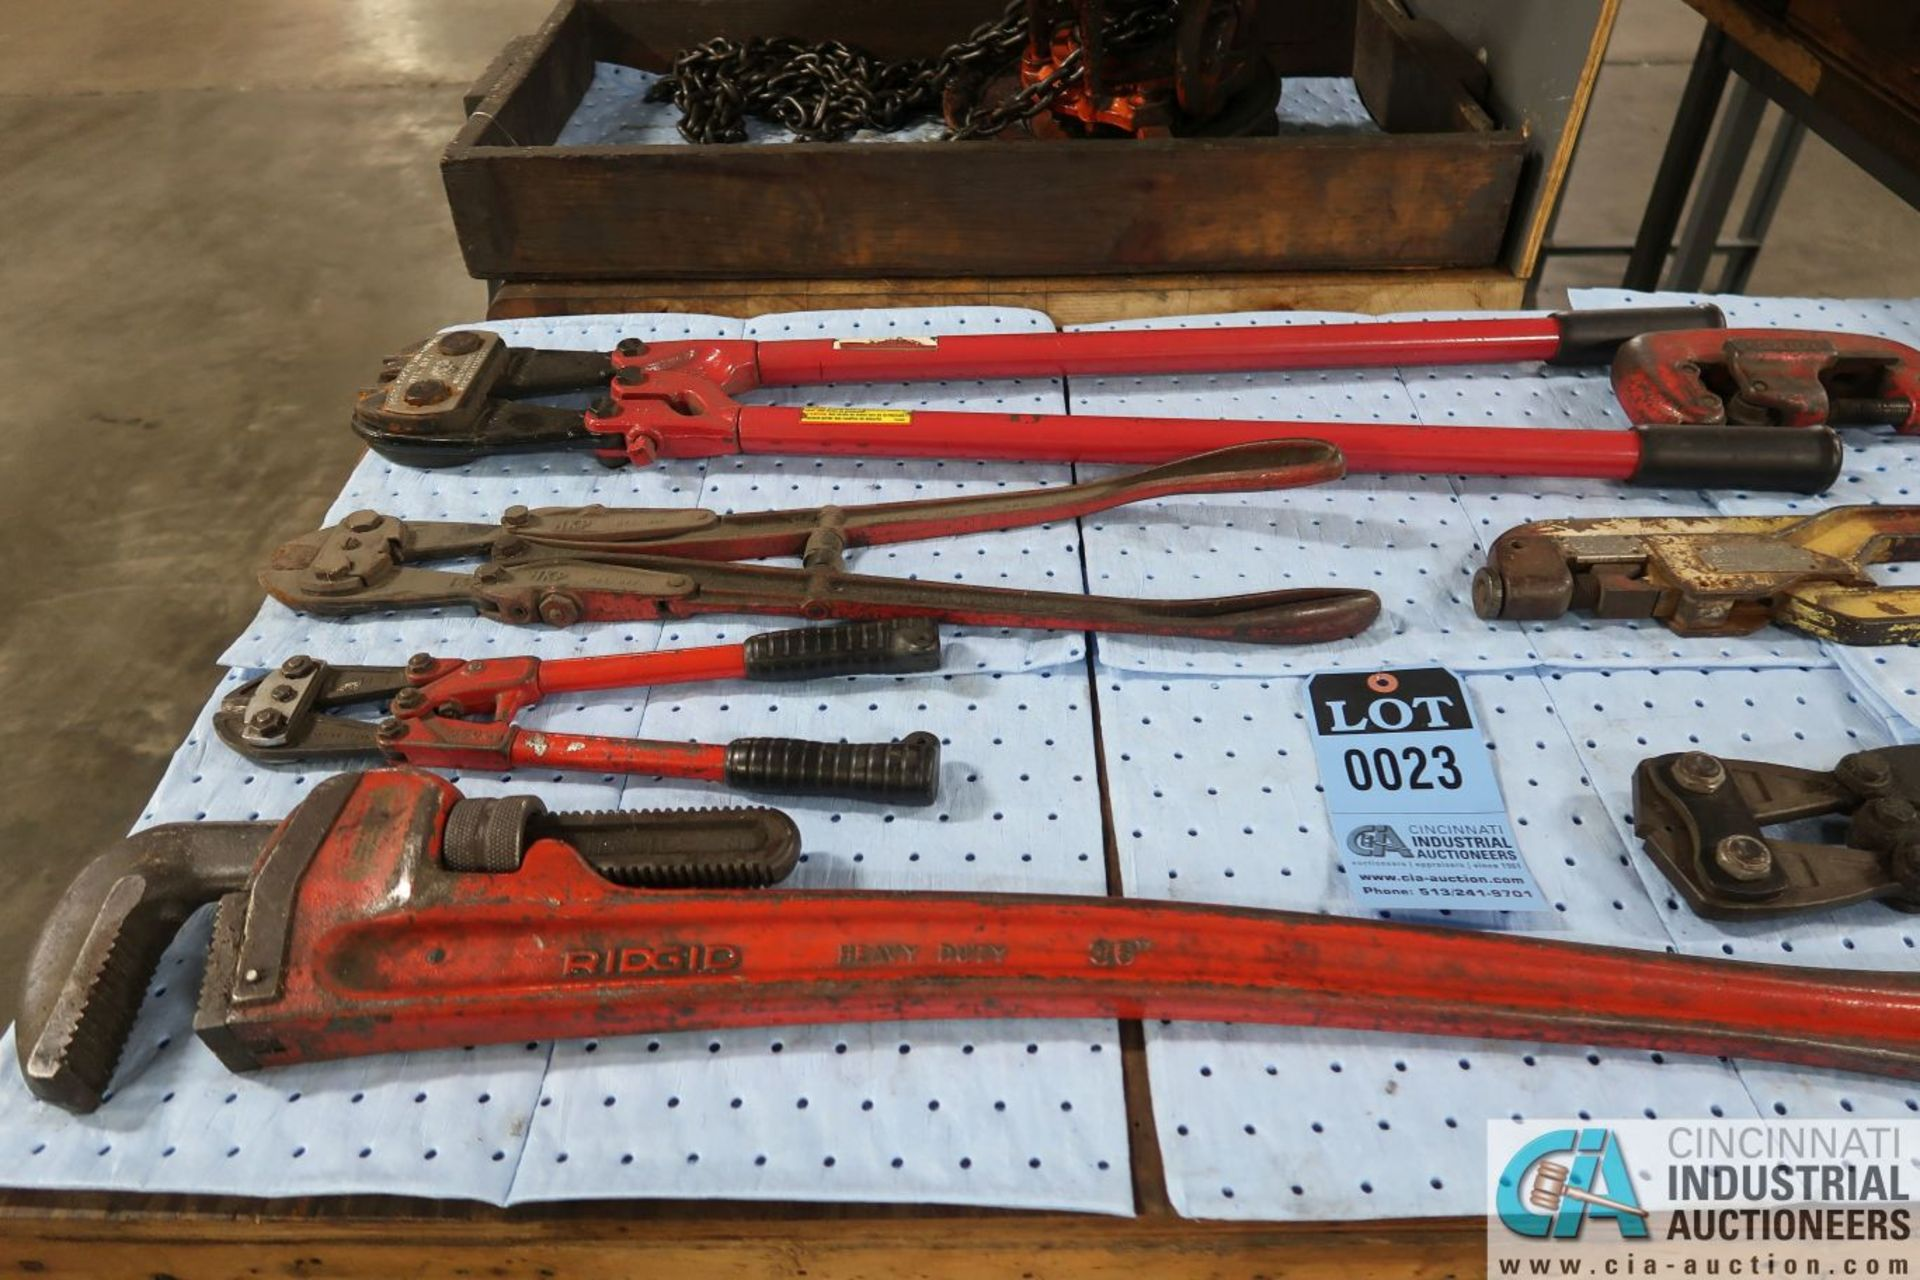 (LOT) PIPE WRENCH, BOLT CUTTERS, CRIMPERS, PIPE CUTTERS AND PALLET PULLERS - Image 2 of 4